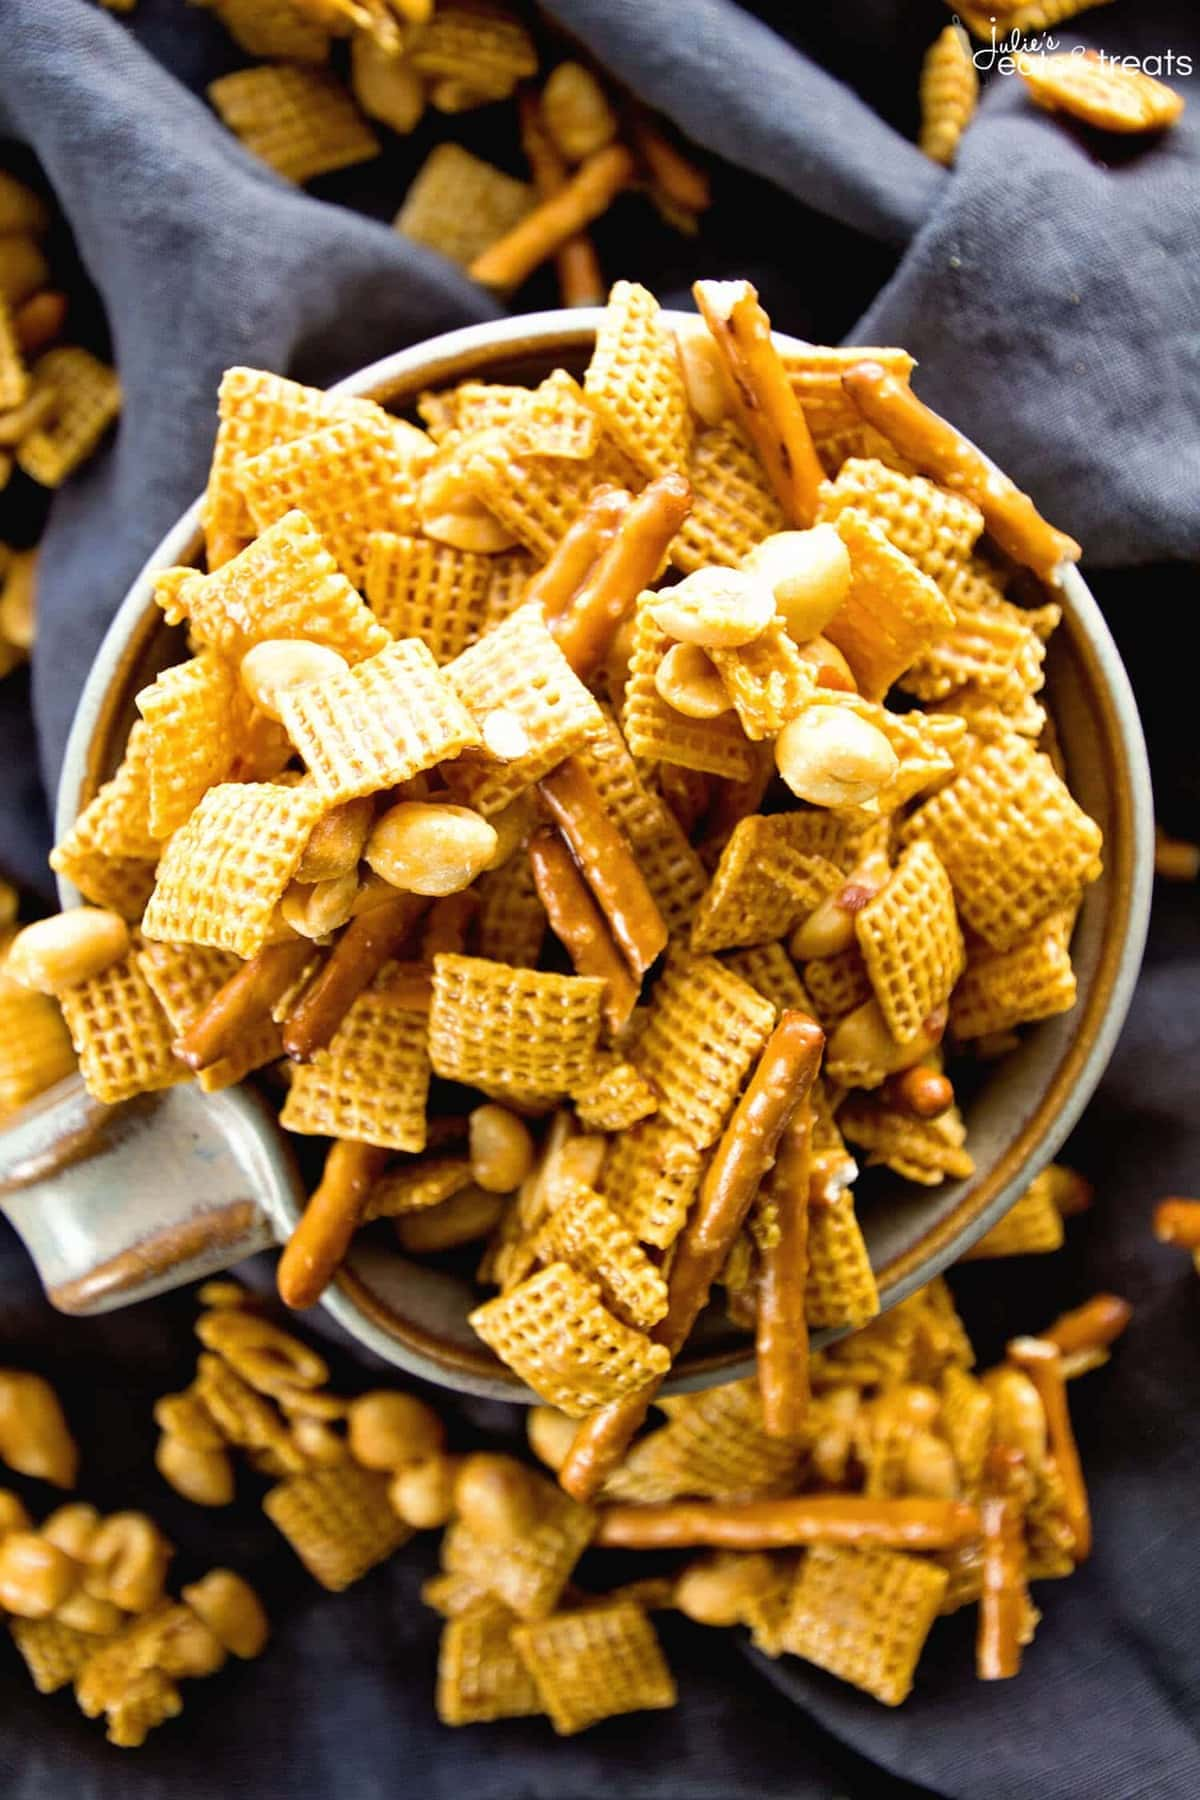 Caramel Chex Mix ~ The Perfect Blend of Sweet & Salty in this Snack Mix! Plus it's Perfect for Parties! Loaded with Chex, Peanuts, Pretzels and Coated in a Caramel!